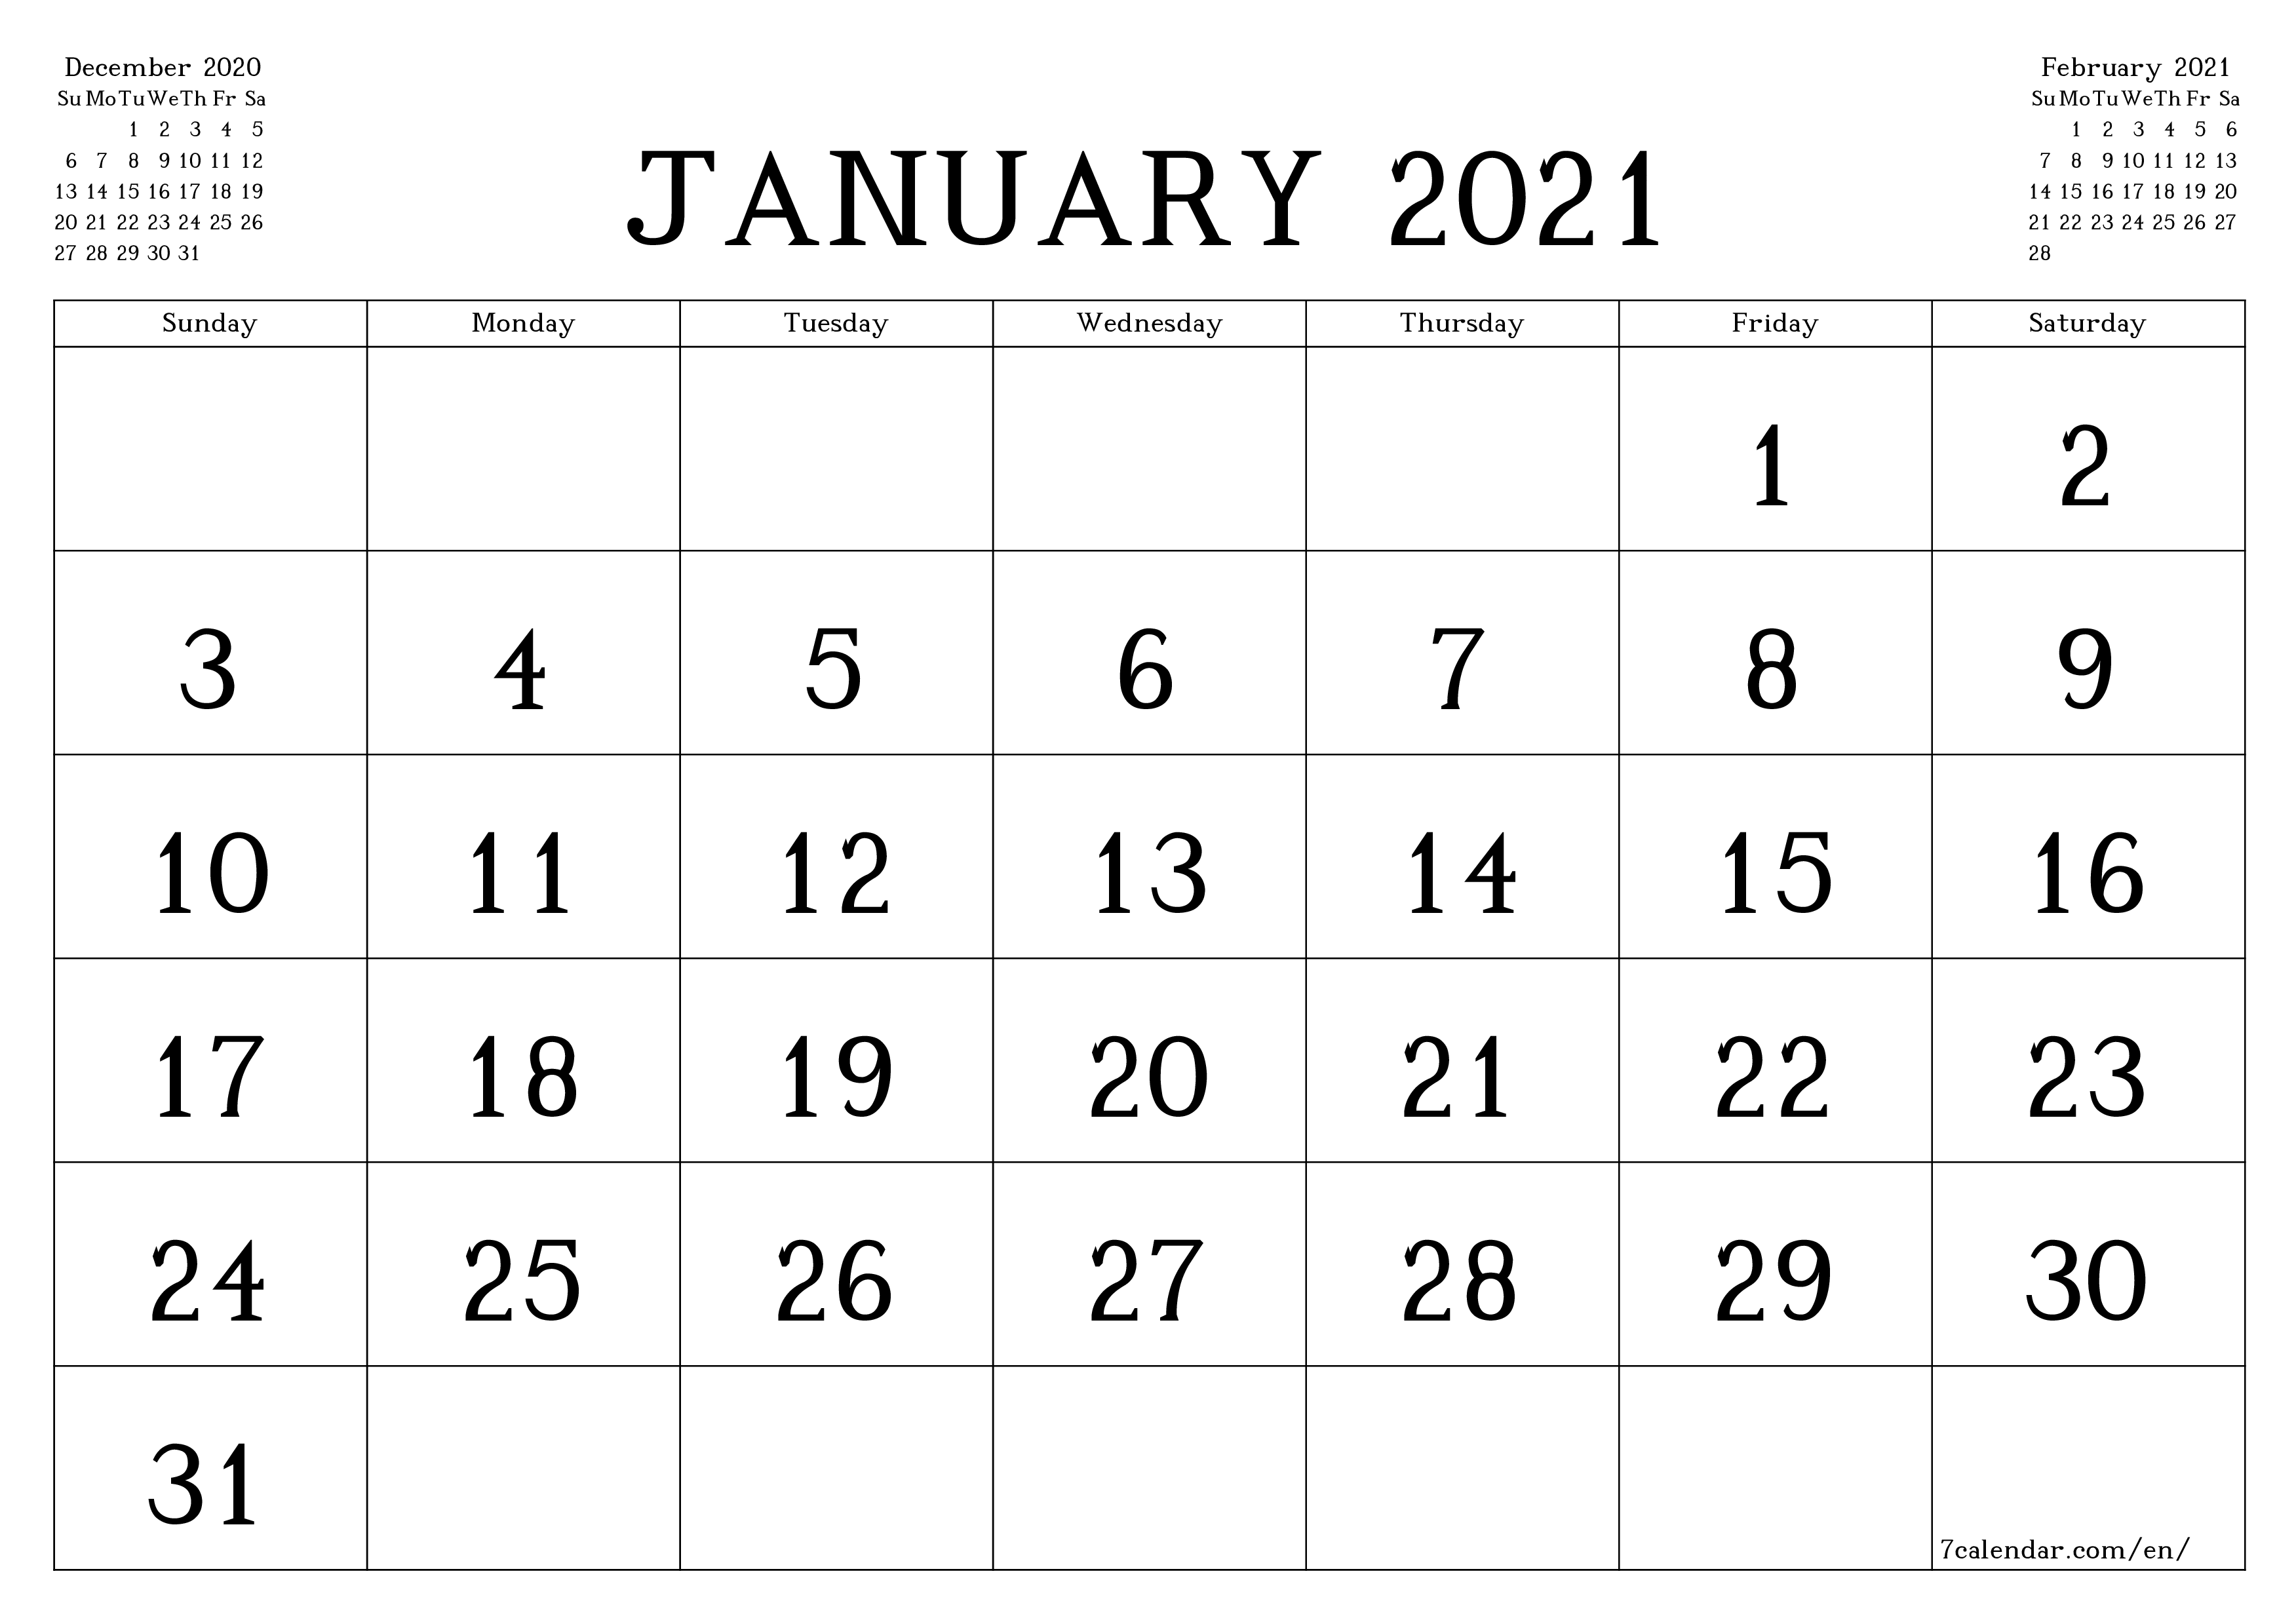 Blank monthly calendar for month January 2021 save and print to PDF  - 7calendar.com